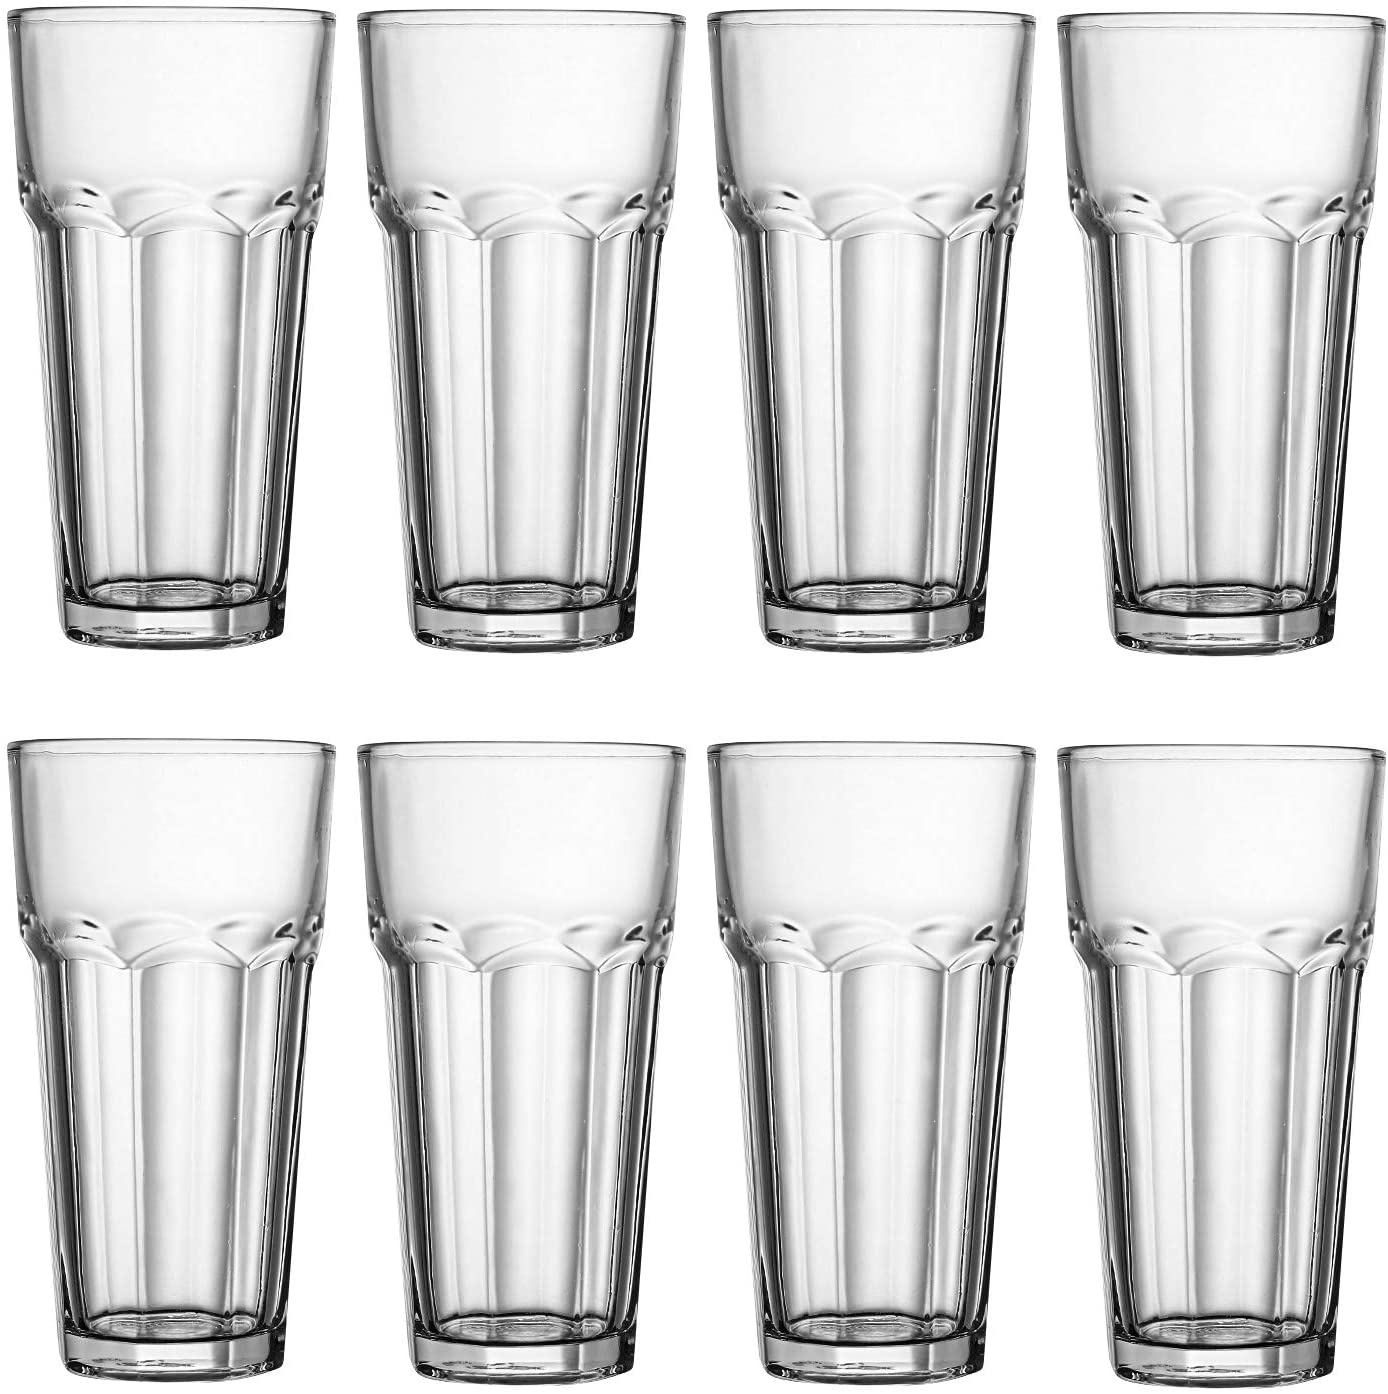 Glass Cups 12 oz,Encheng Clear Highballl Glass Juice Glass Old Fashioned Cocktail Glass Drinking Glasses For Kitchen,Regular Base Water Cup Tumblers For Beverage Glass Drinking Cups Beer Cups Set Of 8